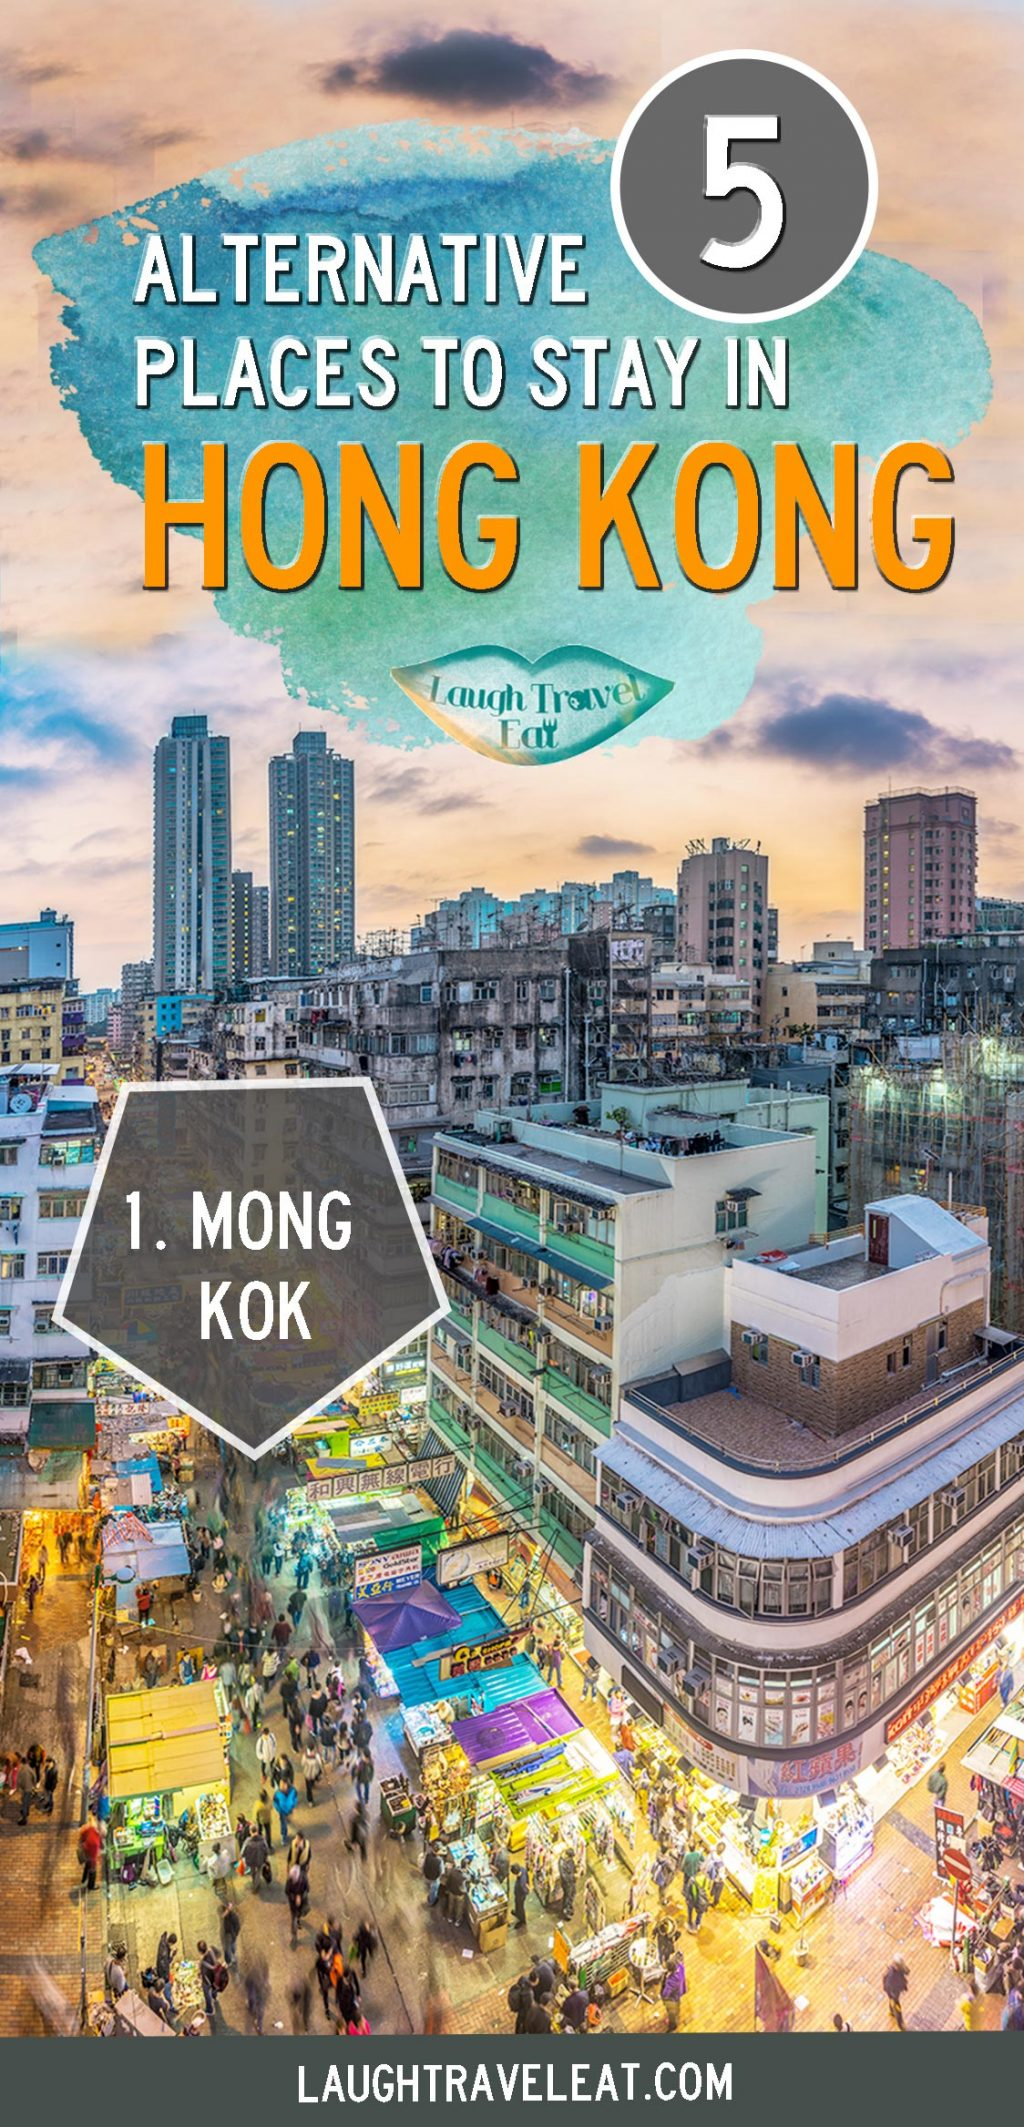 Many who visit Hong Kong stays in the urban center. If you want to avoid the touristy part or find somewhere cheaper - here's your guide!